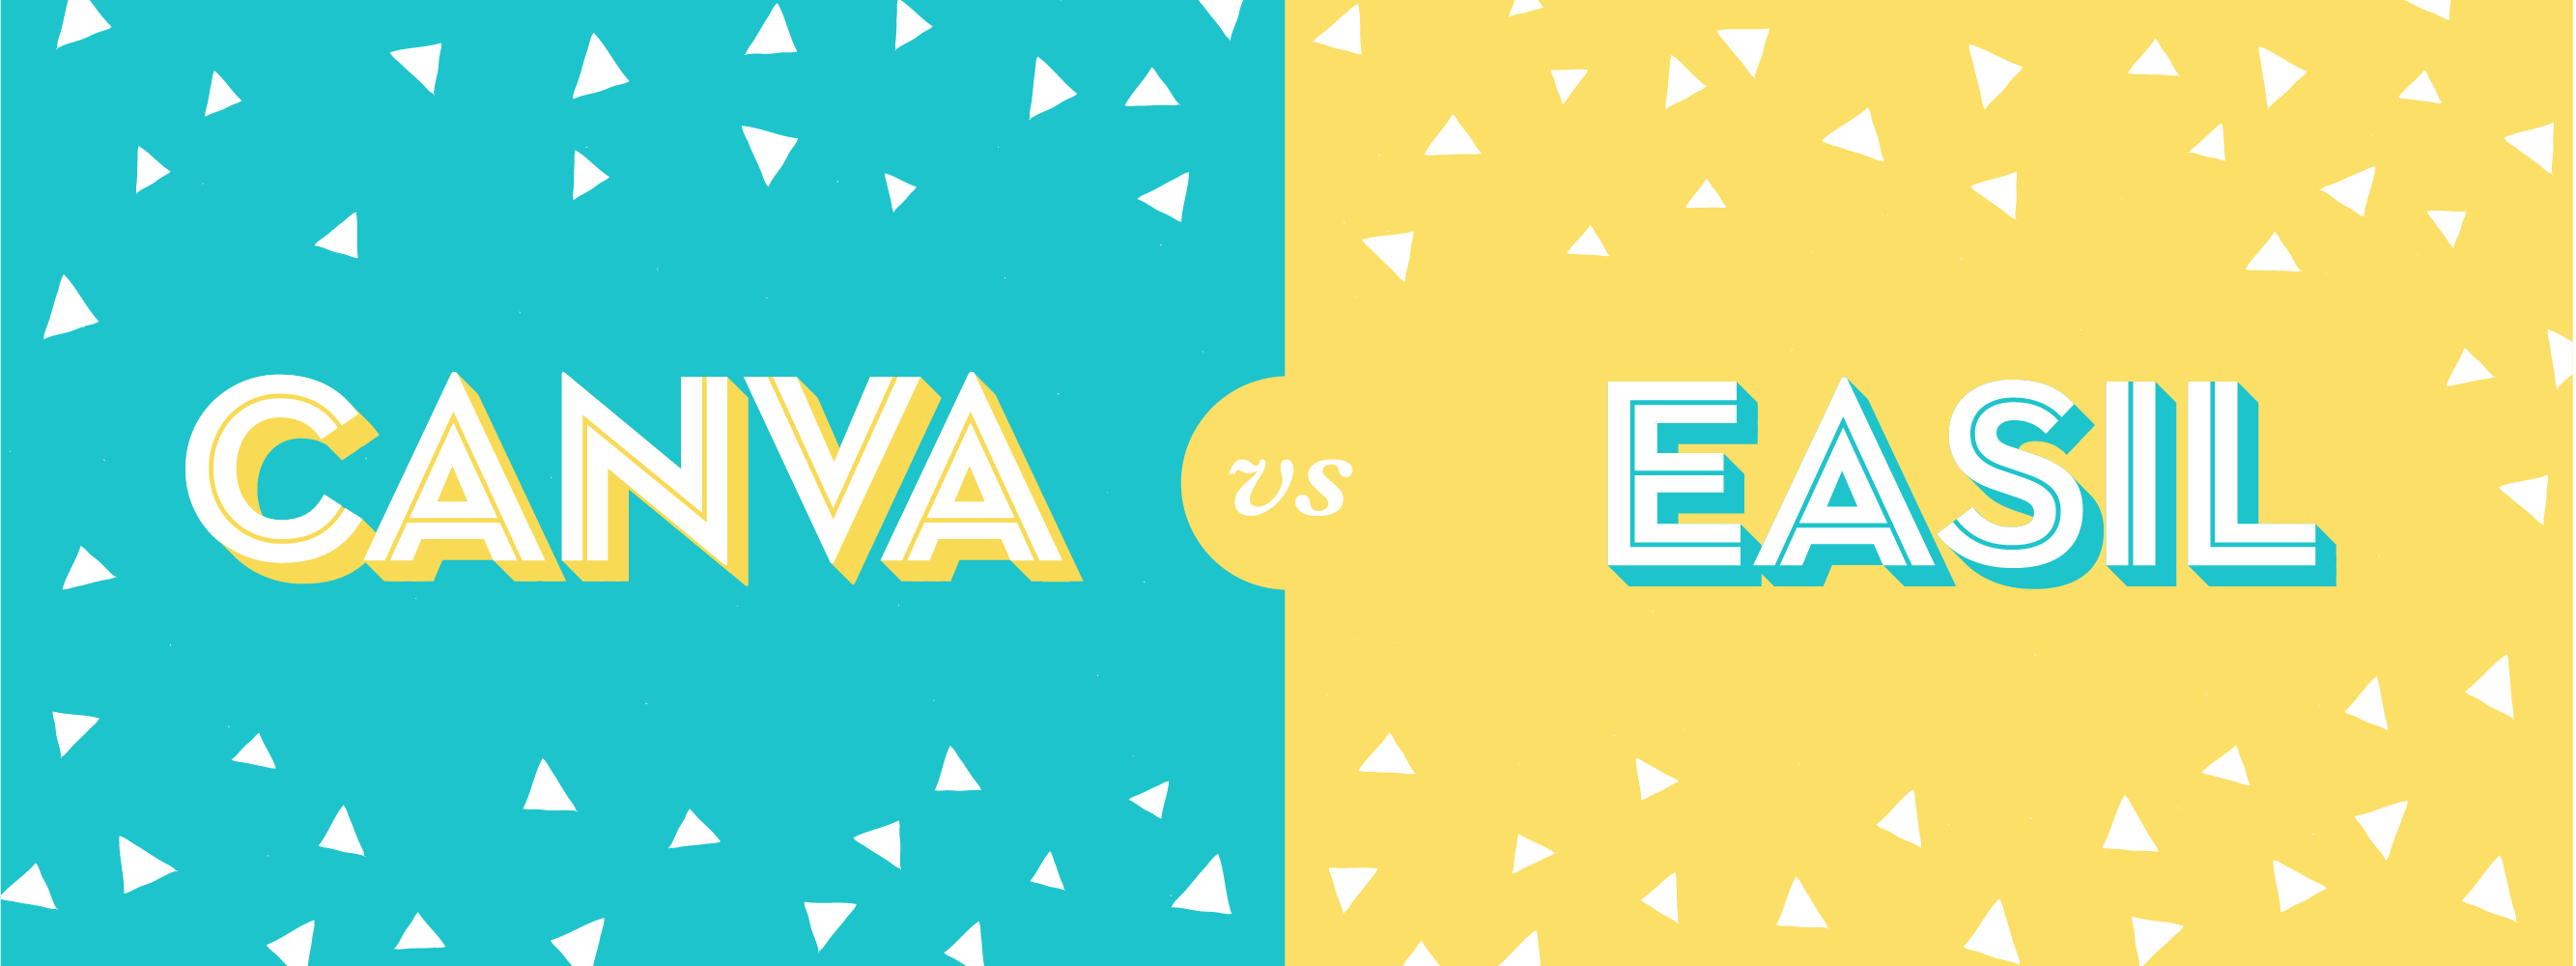 Canva vs Easil comparison